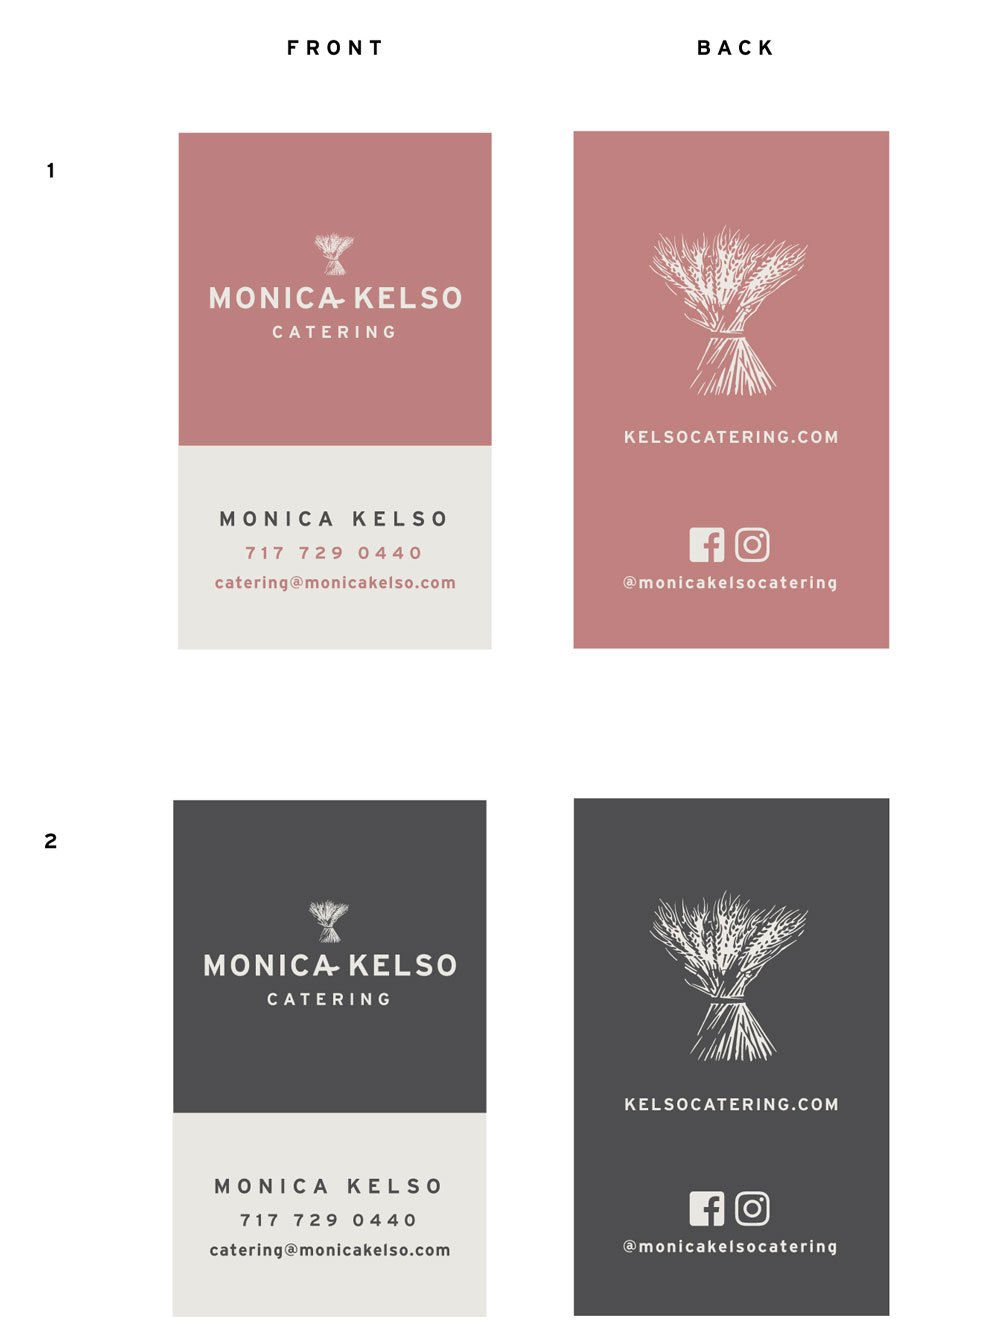 image of business cards for monica kelso catering